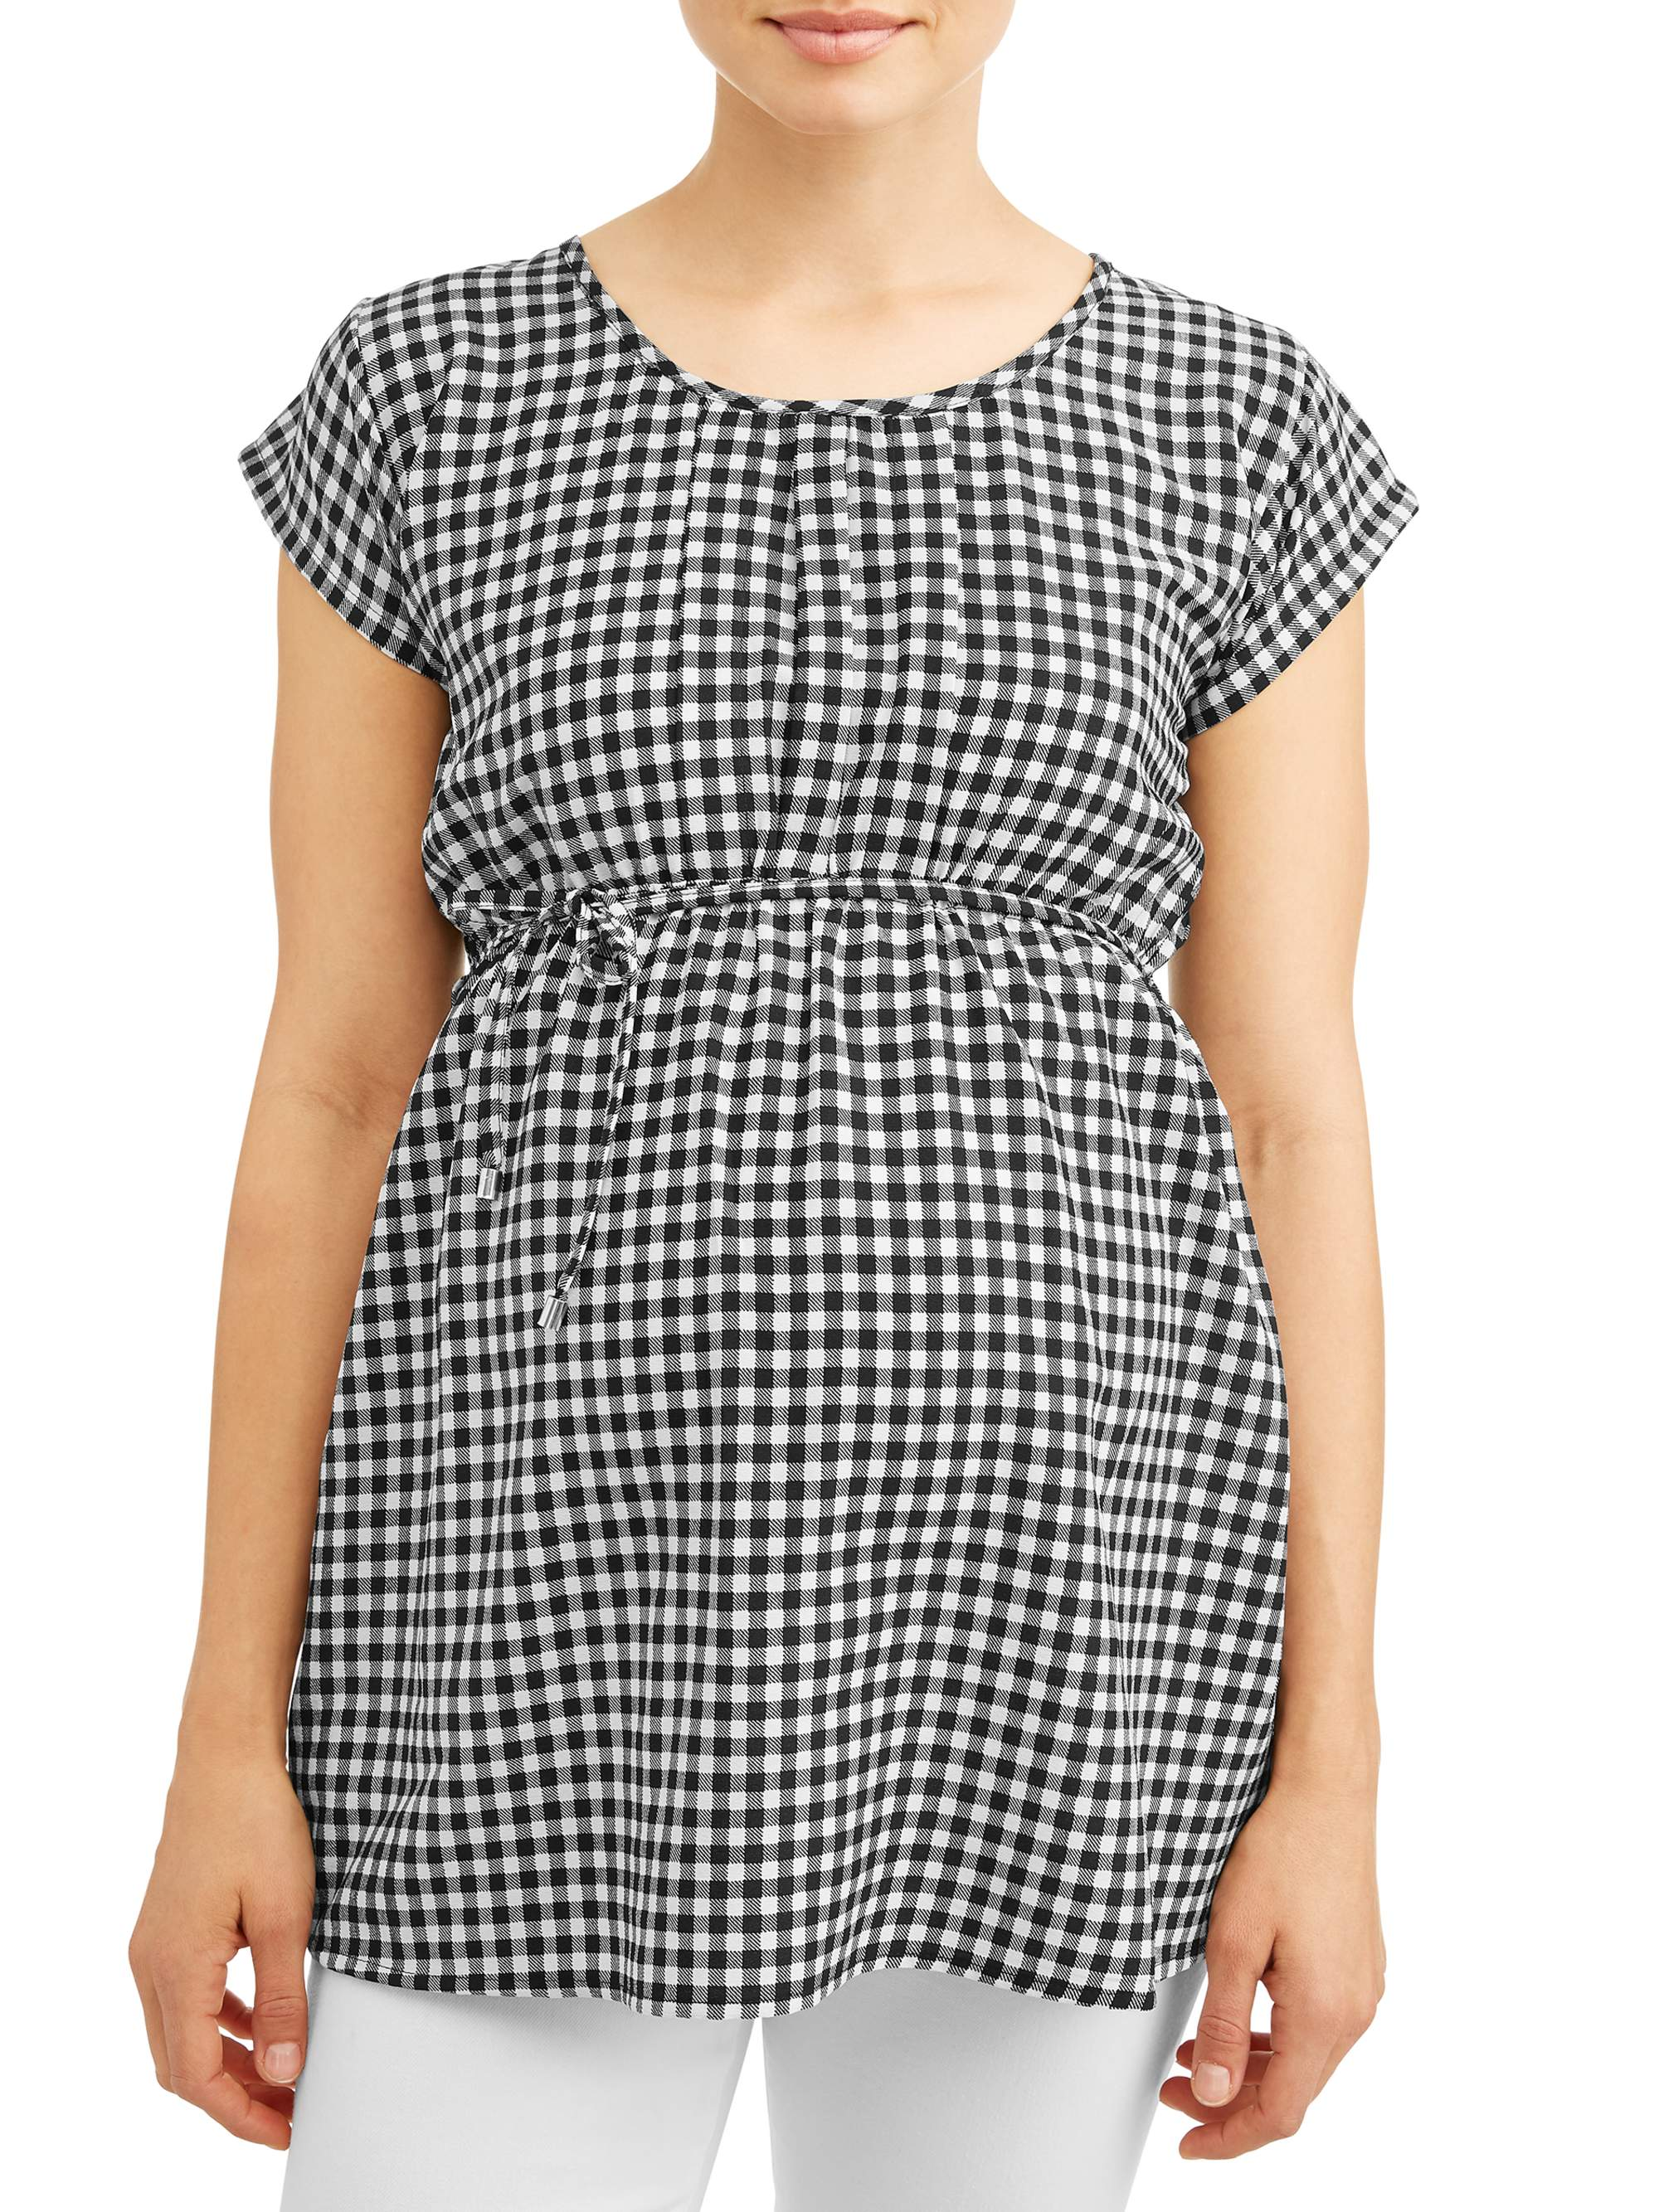 Maternity Gingham Top - Available in Plus Sizes